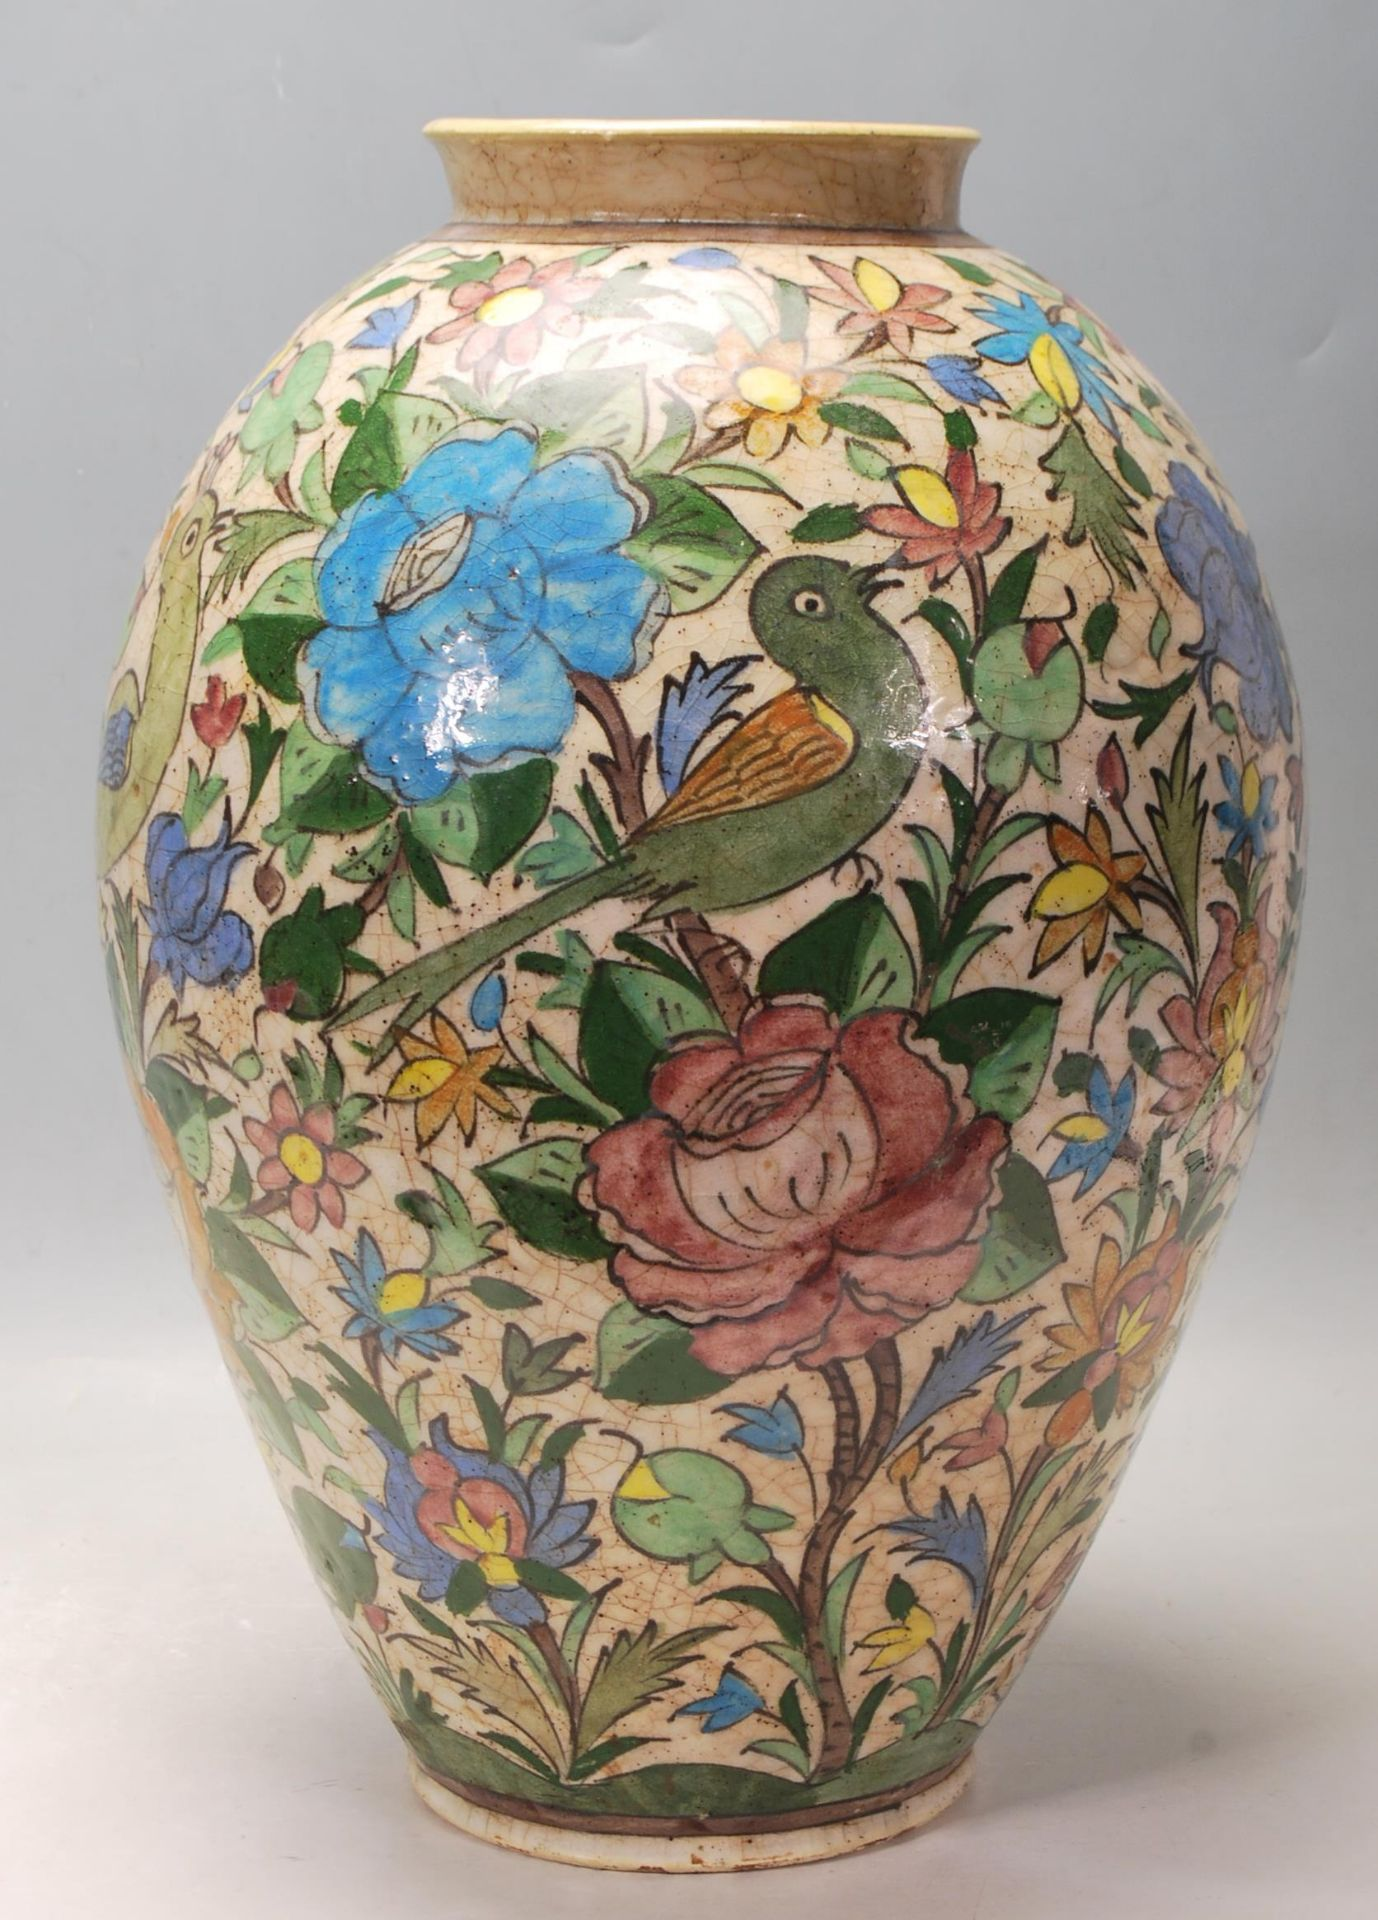 LATE 20TH CENTURY PERSIAN ISLAMIC VASE WITH POLYCHROME DECORATION - Image 4 of 7